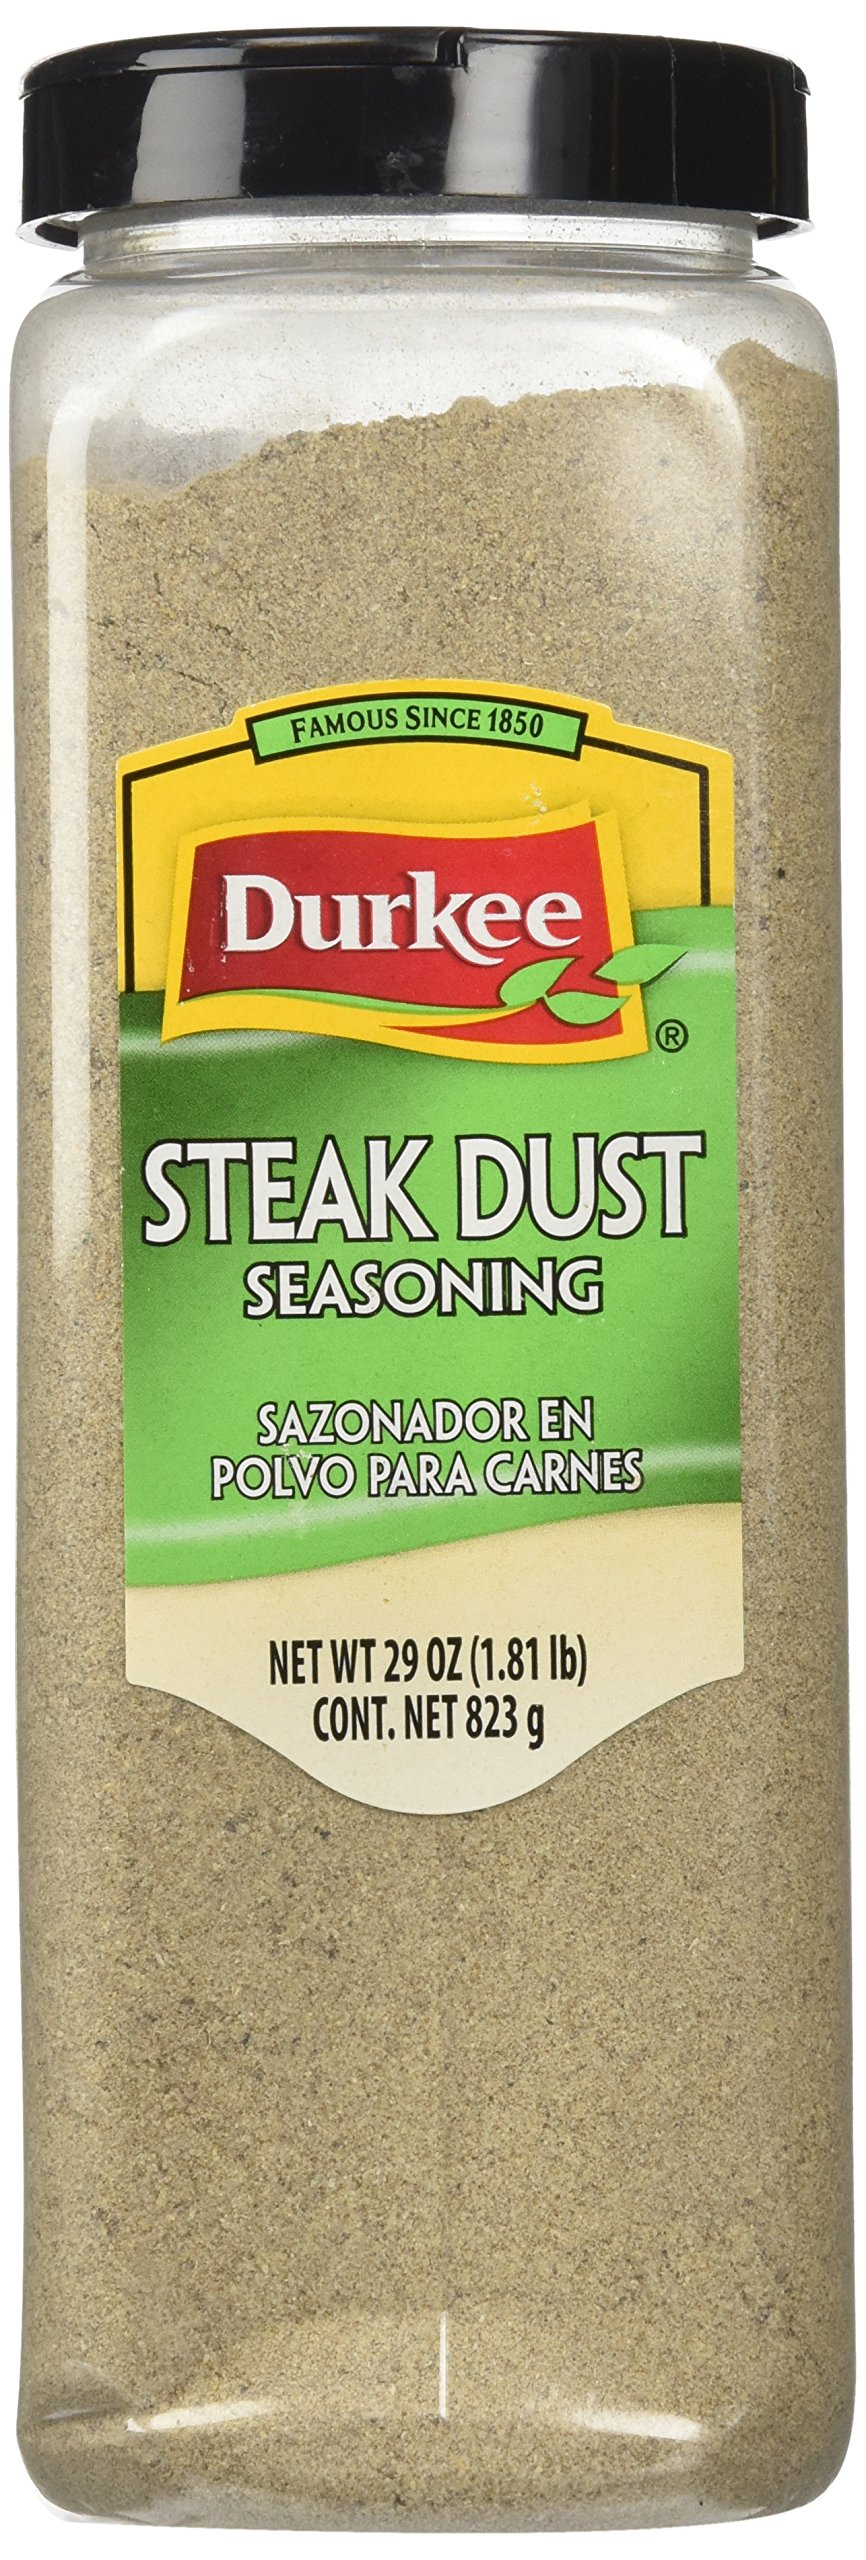 Durkee Steak Dust Seasoning, 29 Oz. by Durkee (Image #1)